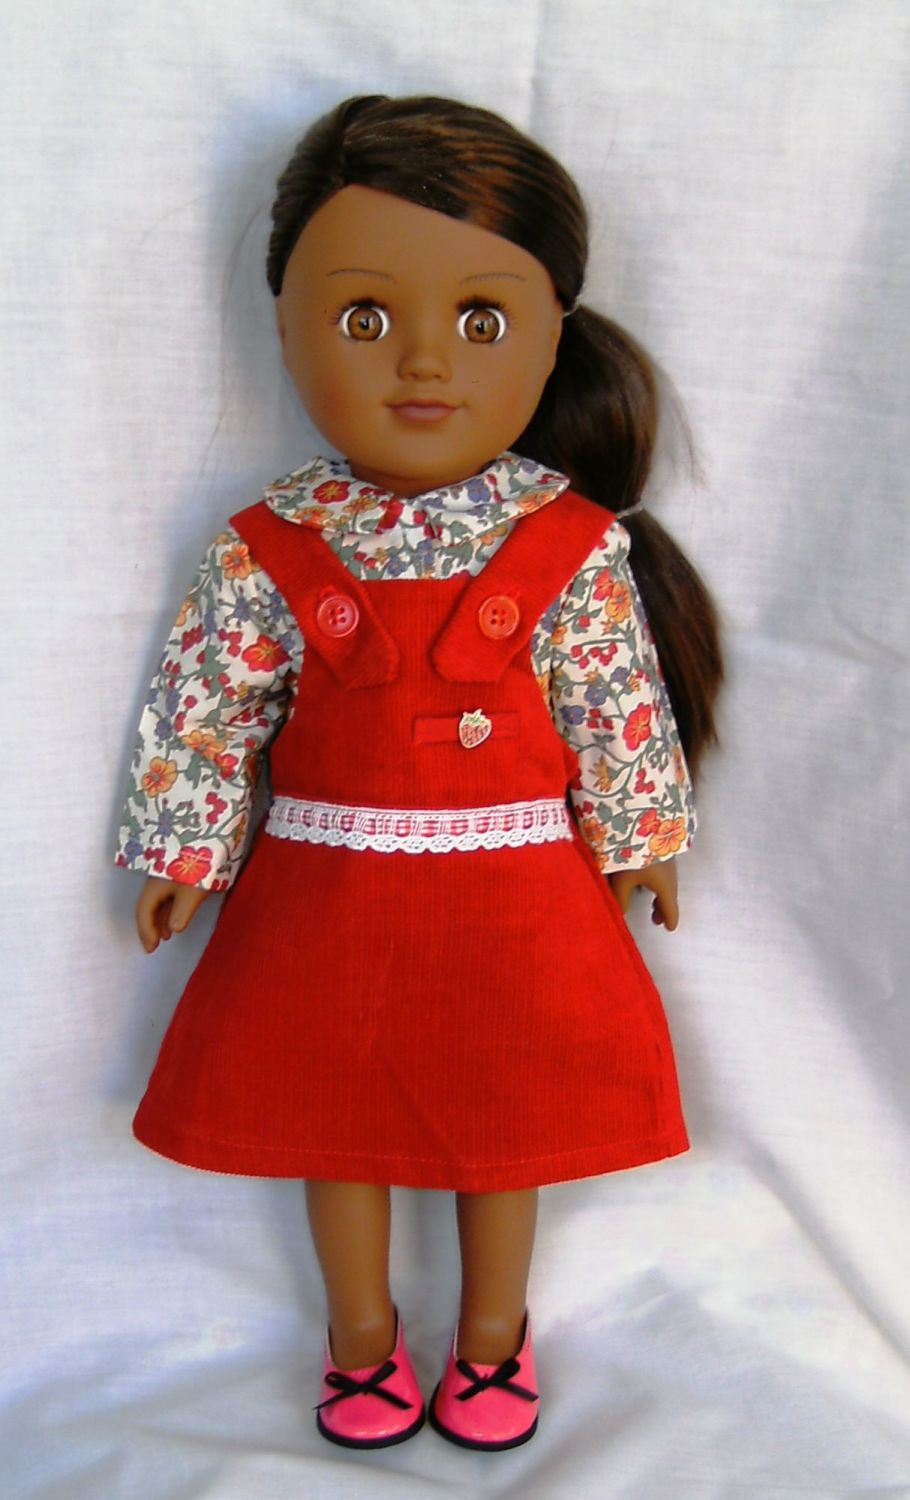 Pinafore dress and blouse made for the 18 inch high Sindy and most 18 inch